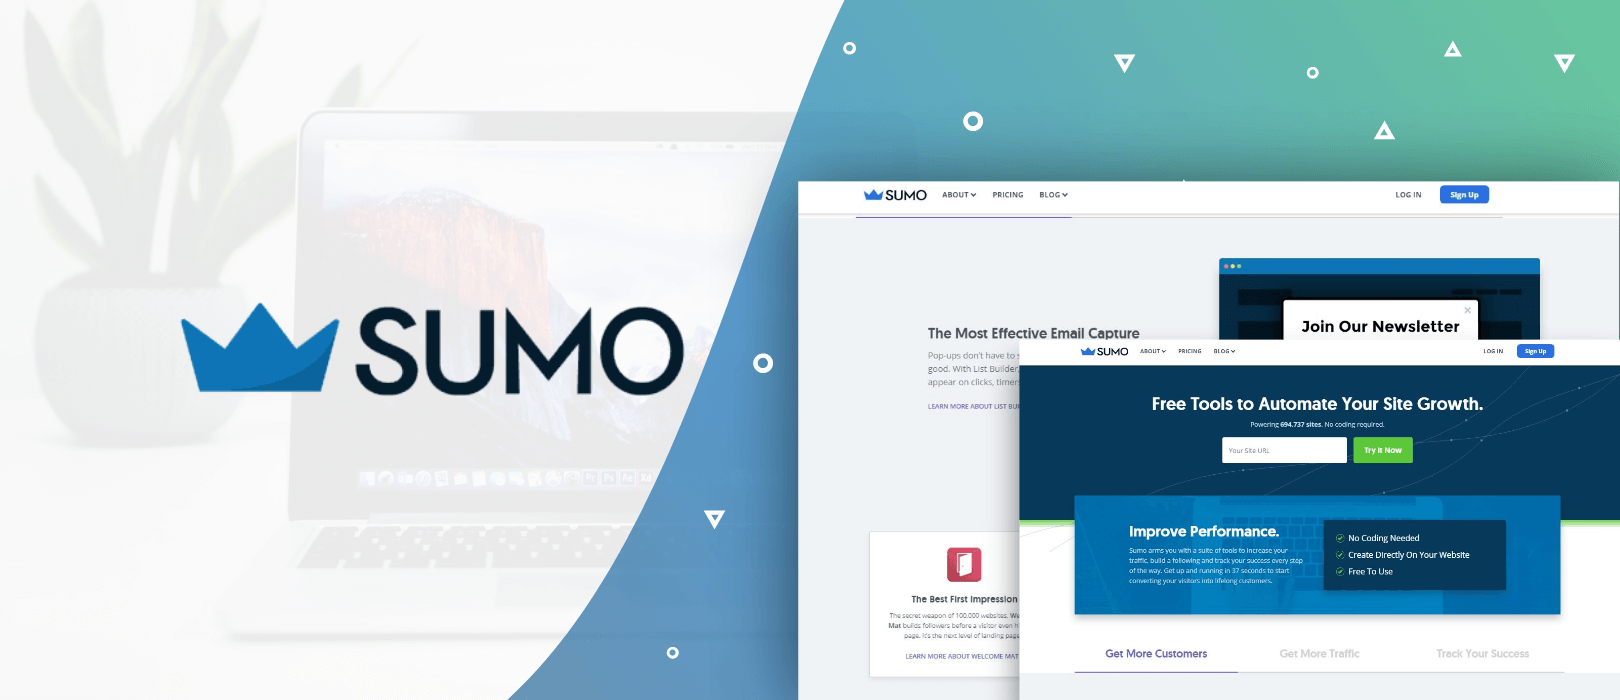 How to Use Sumo Like a Pro and Boost Your Traffic